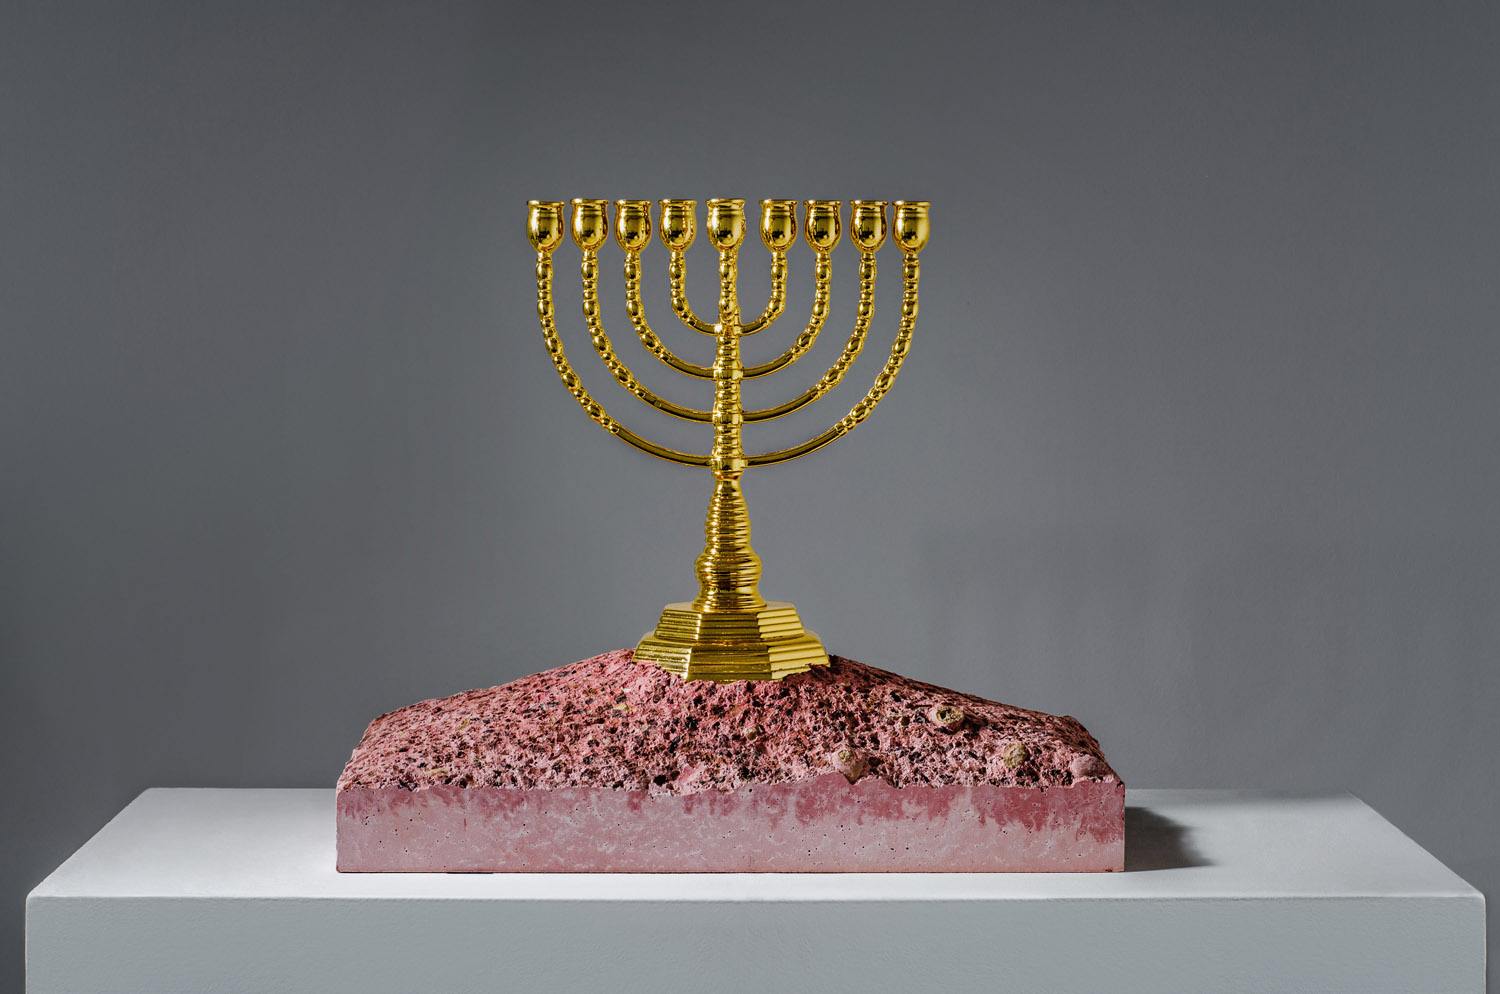 Exodus Menorah sculpture by Amarist studio